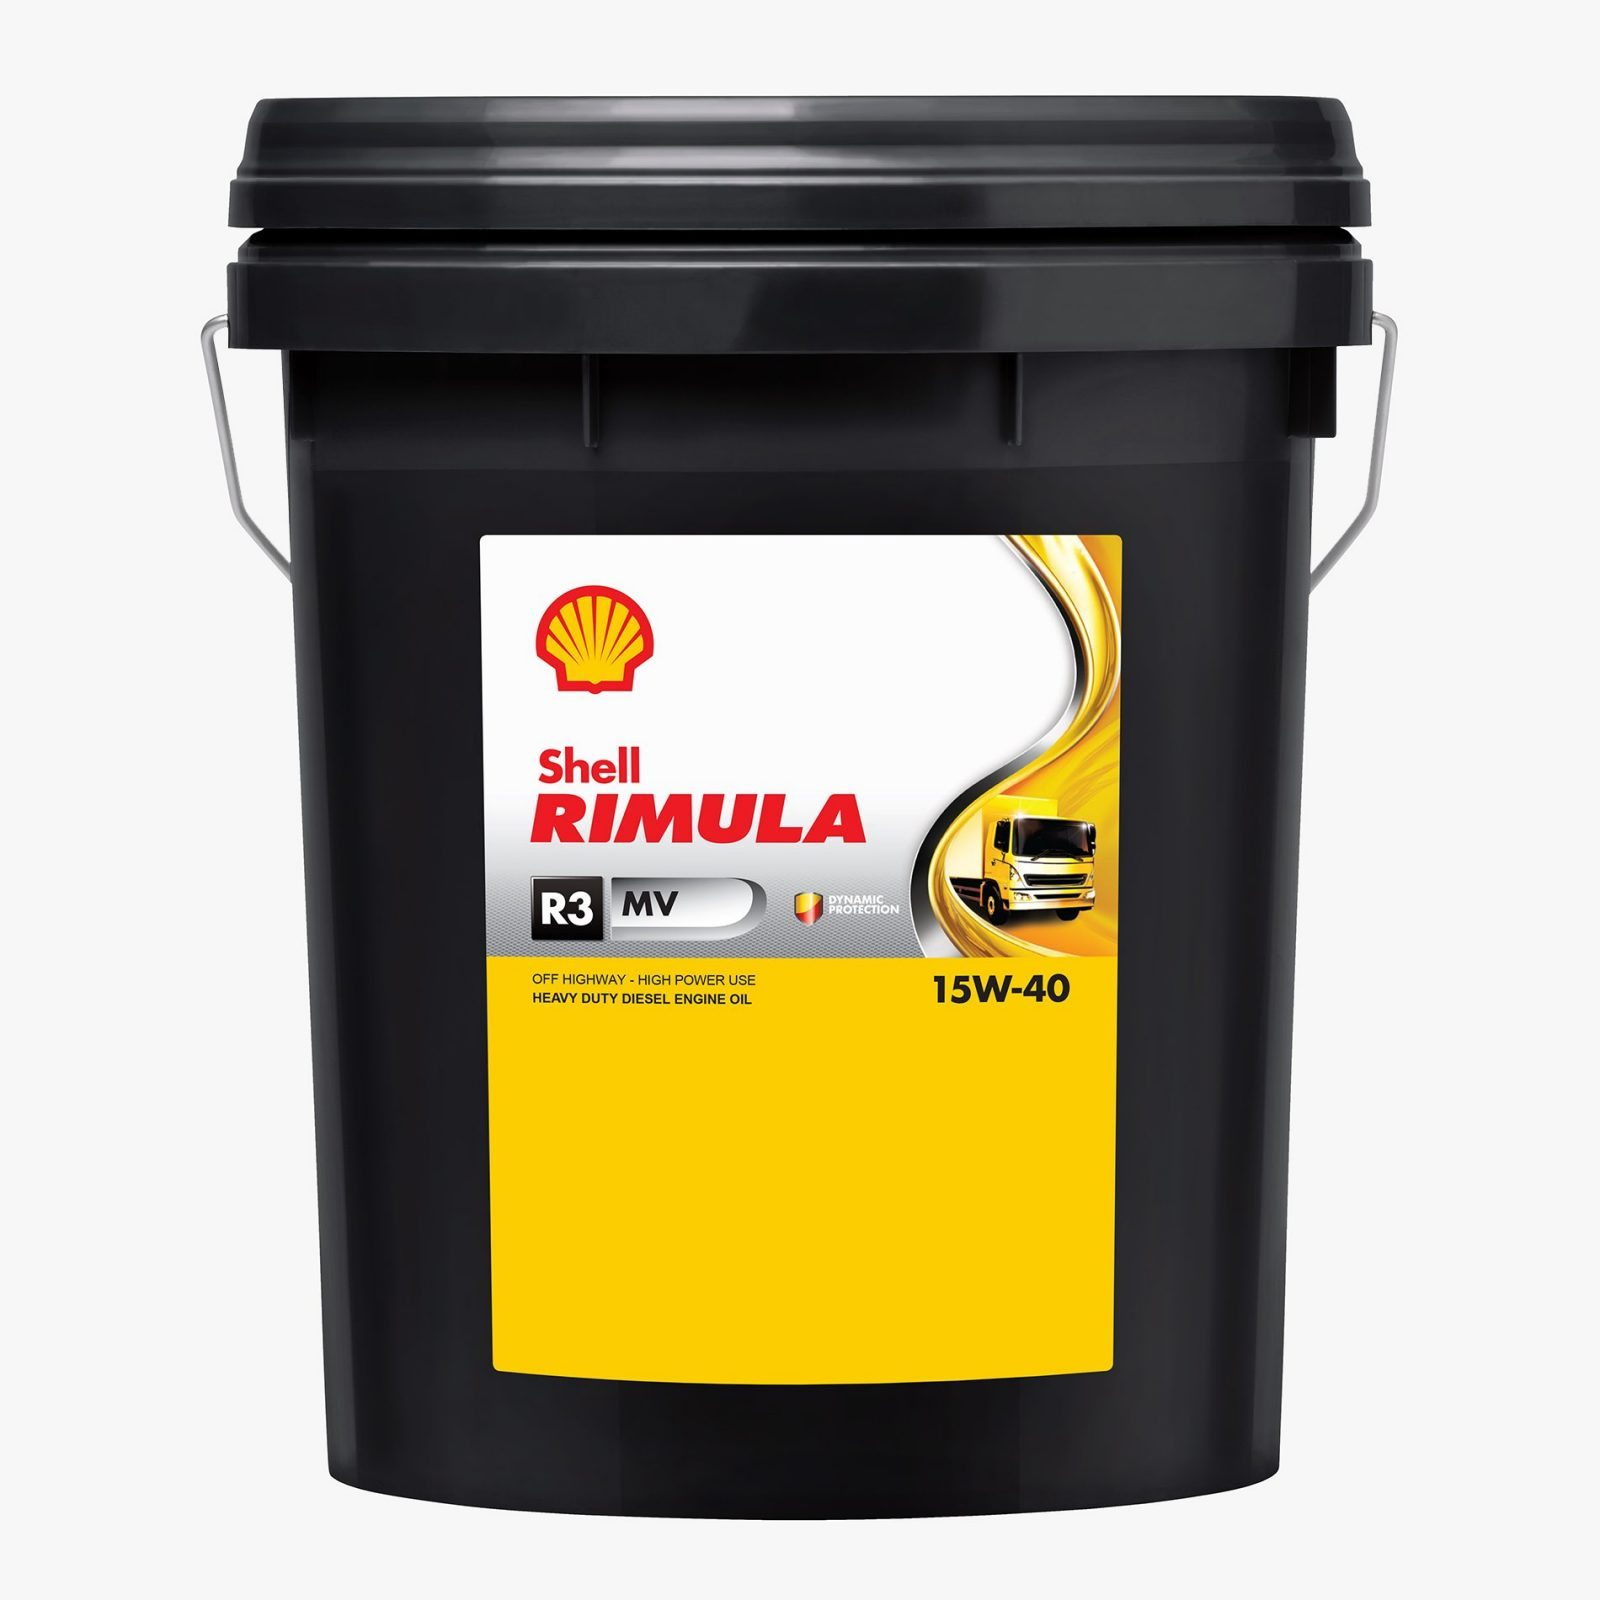 Shell Rimula R3 MV